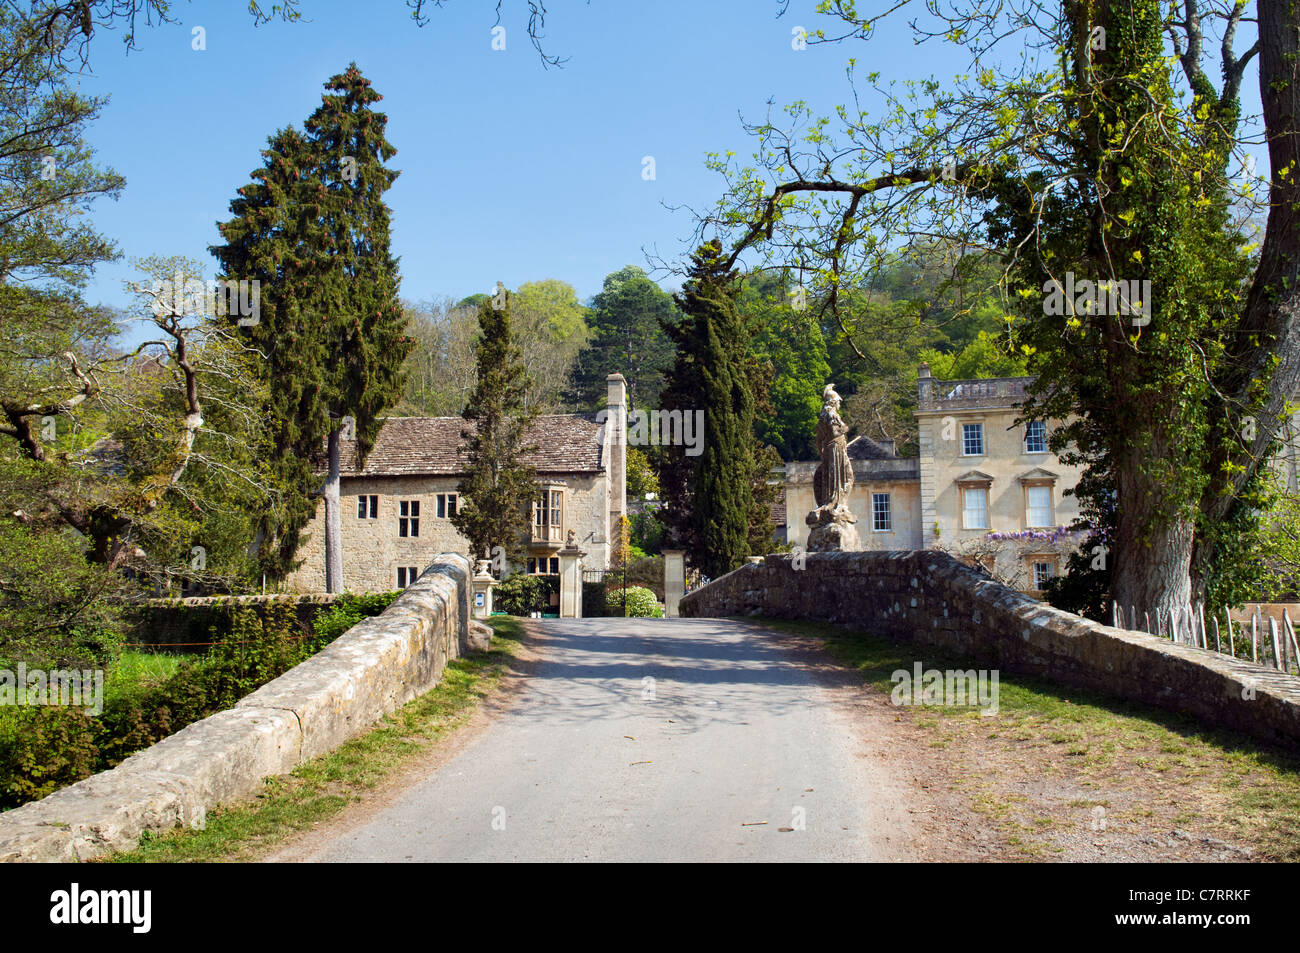 Picturesque scene at Iford of single track road, bridge and Iford manor, taken at Iford, Bradford on avon on fine - Stock Image